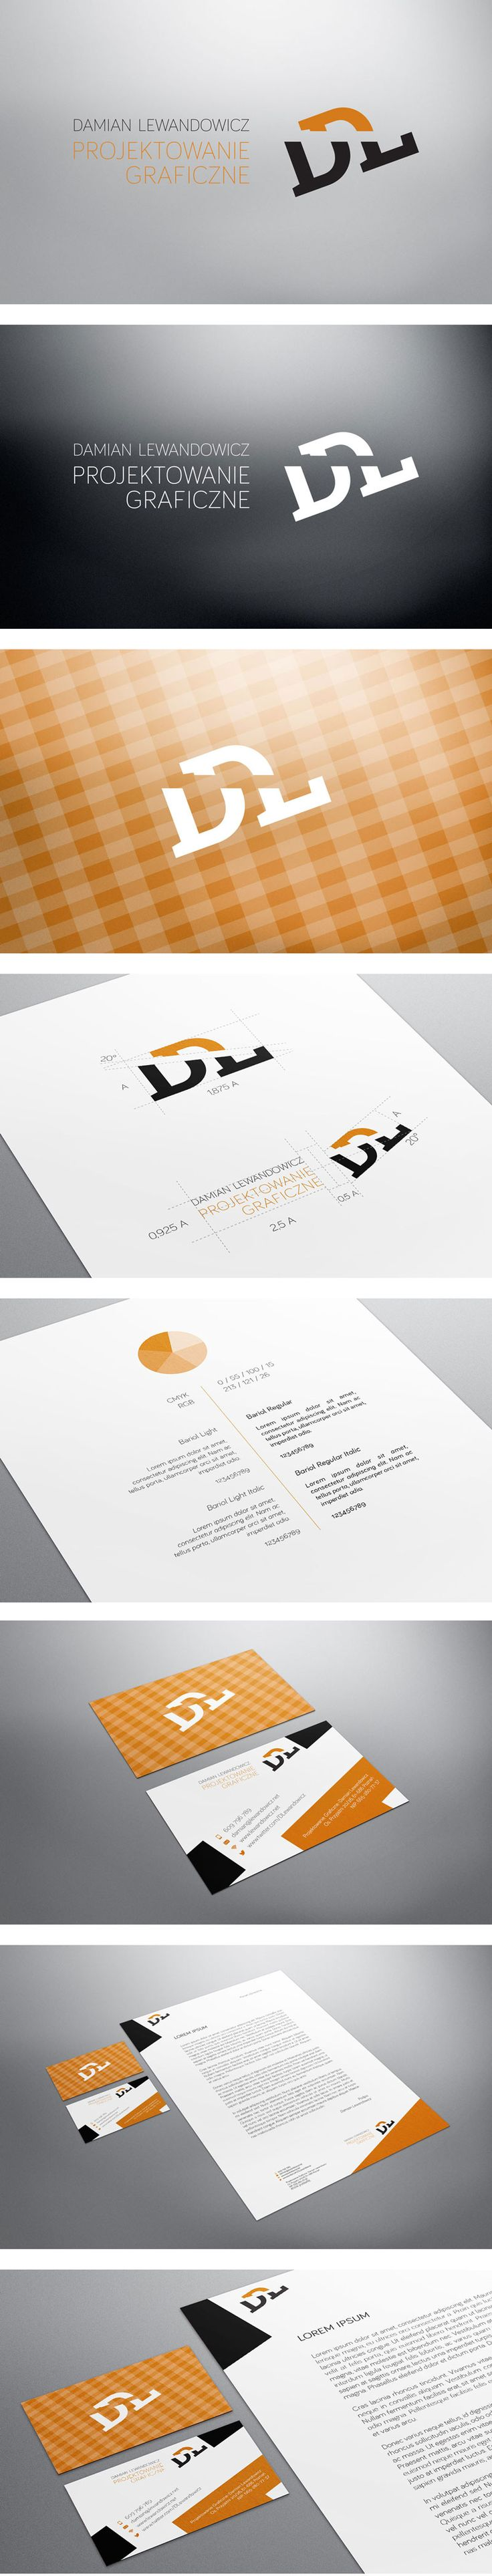 Corporate Identity for my own company. Project included brand new logo based on monogram and cohesive identity design from business cards to new website.